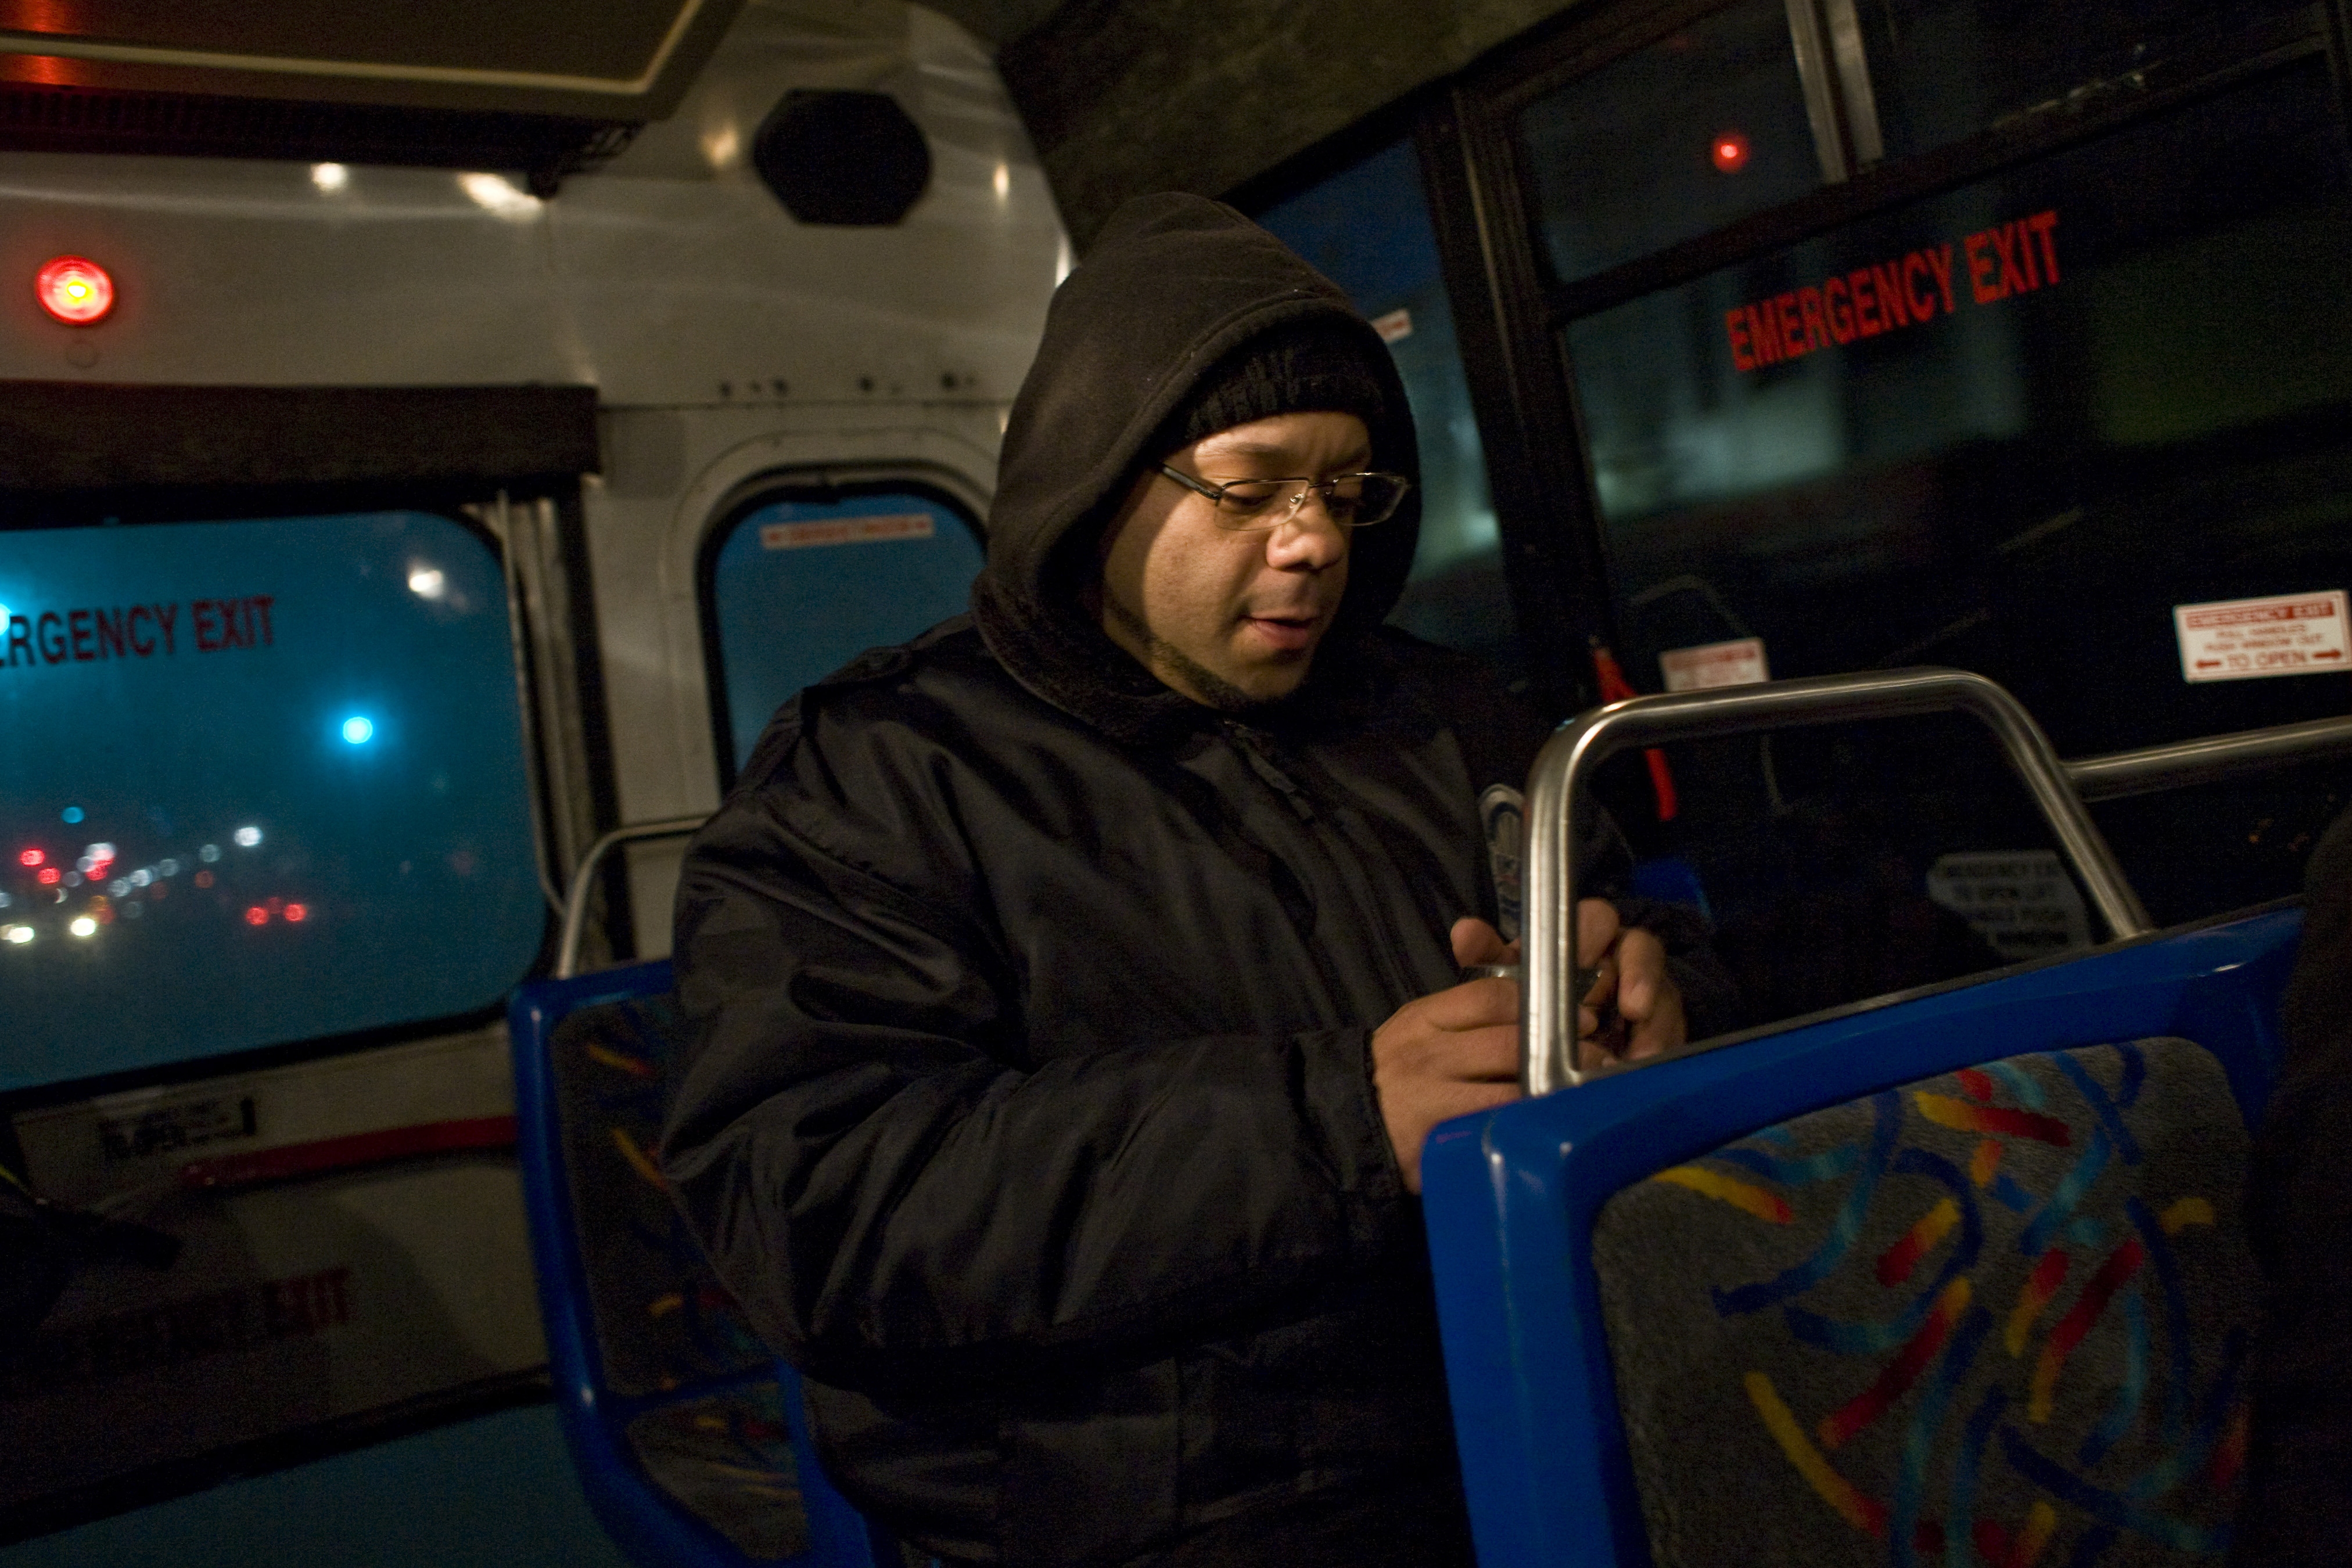 """Ramsey Montanez rides a bus to get to his 12-hour shift as a security guard in North Bergen, N.J. Montanez, a community college student who often gets off work at 11 p.m. and returns at 7 a.m., is one of many Americans beleaguered by such """"clopening shifts""""– a widespread practice that some politicians are looking to curtail."""